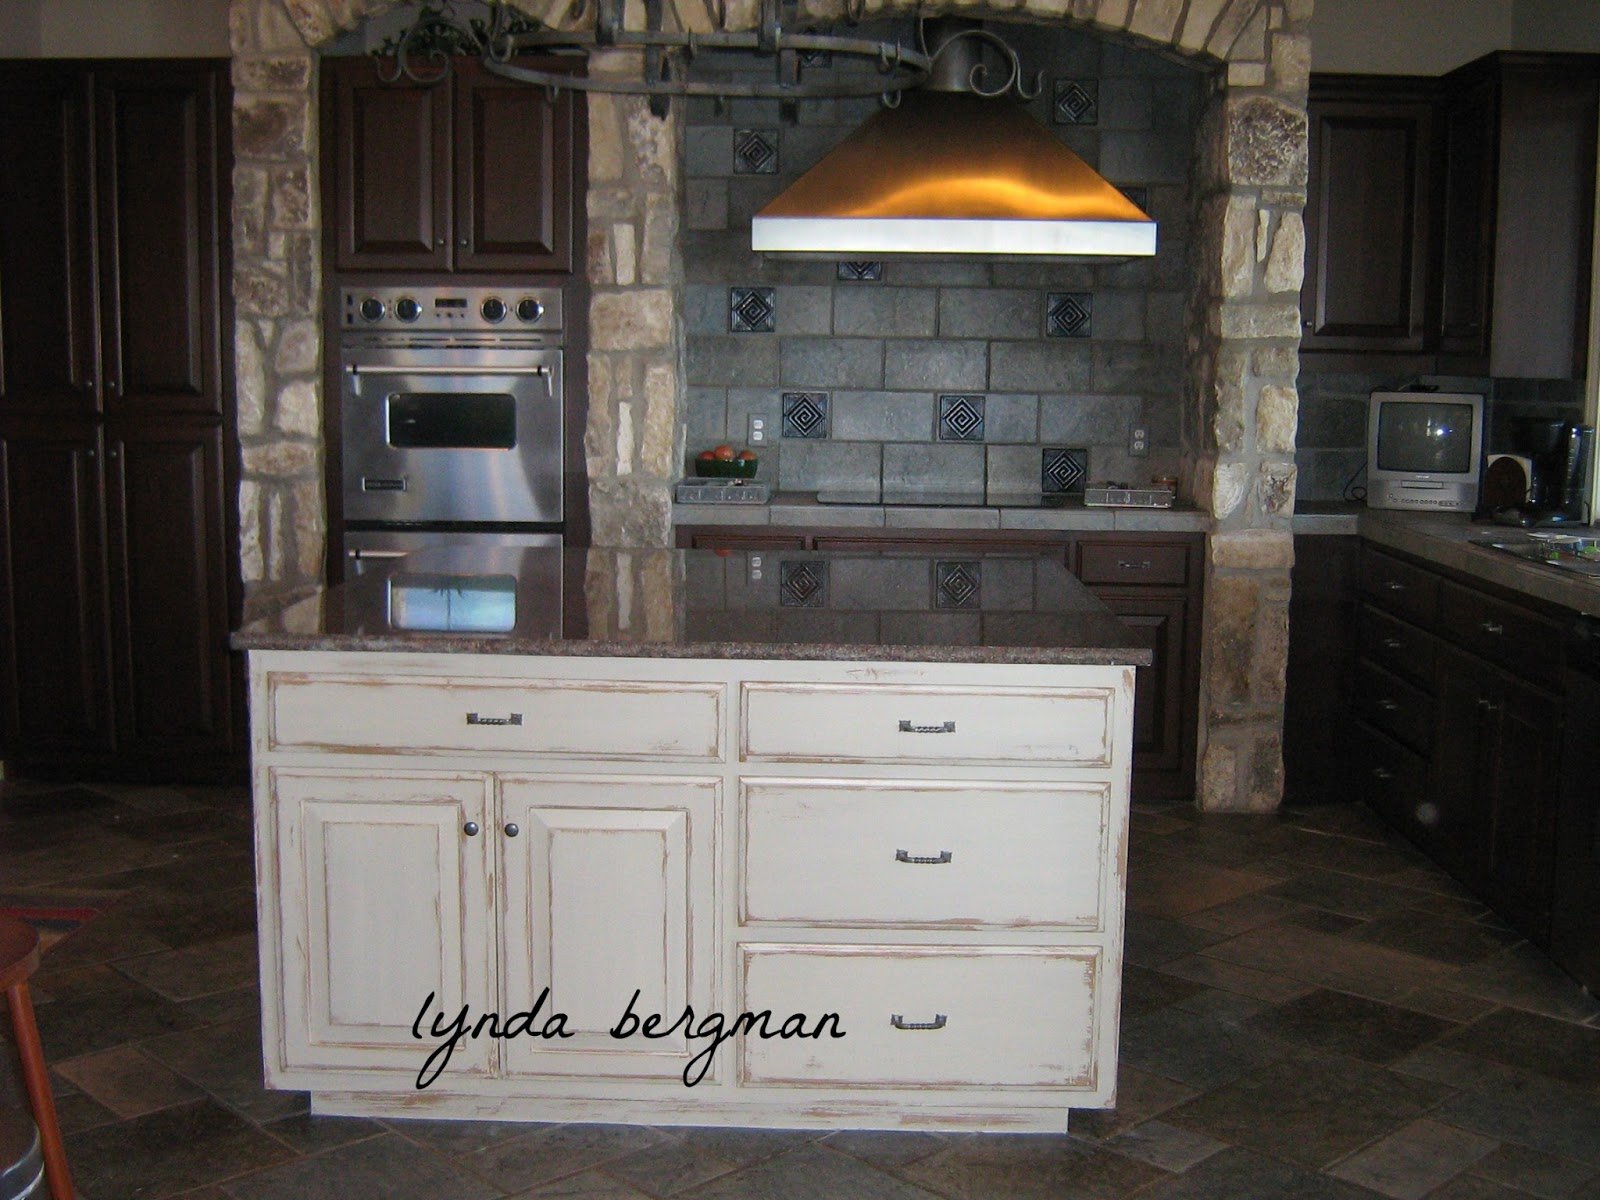 lynda bergman decorative artisan: white kitchen cabinets to a hand